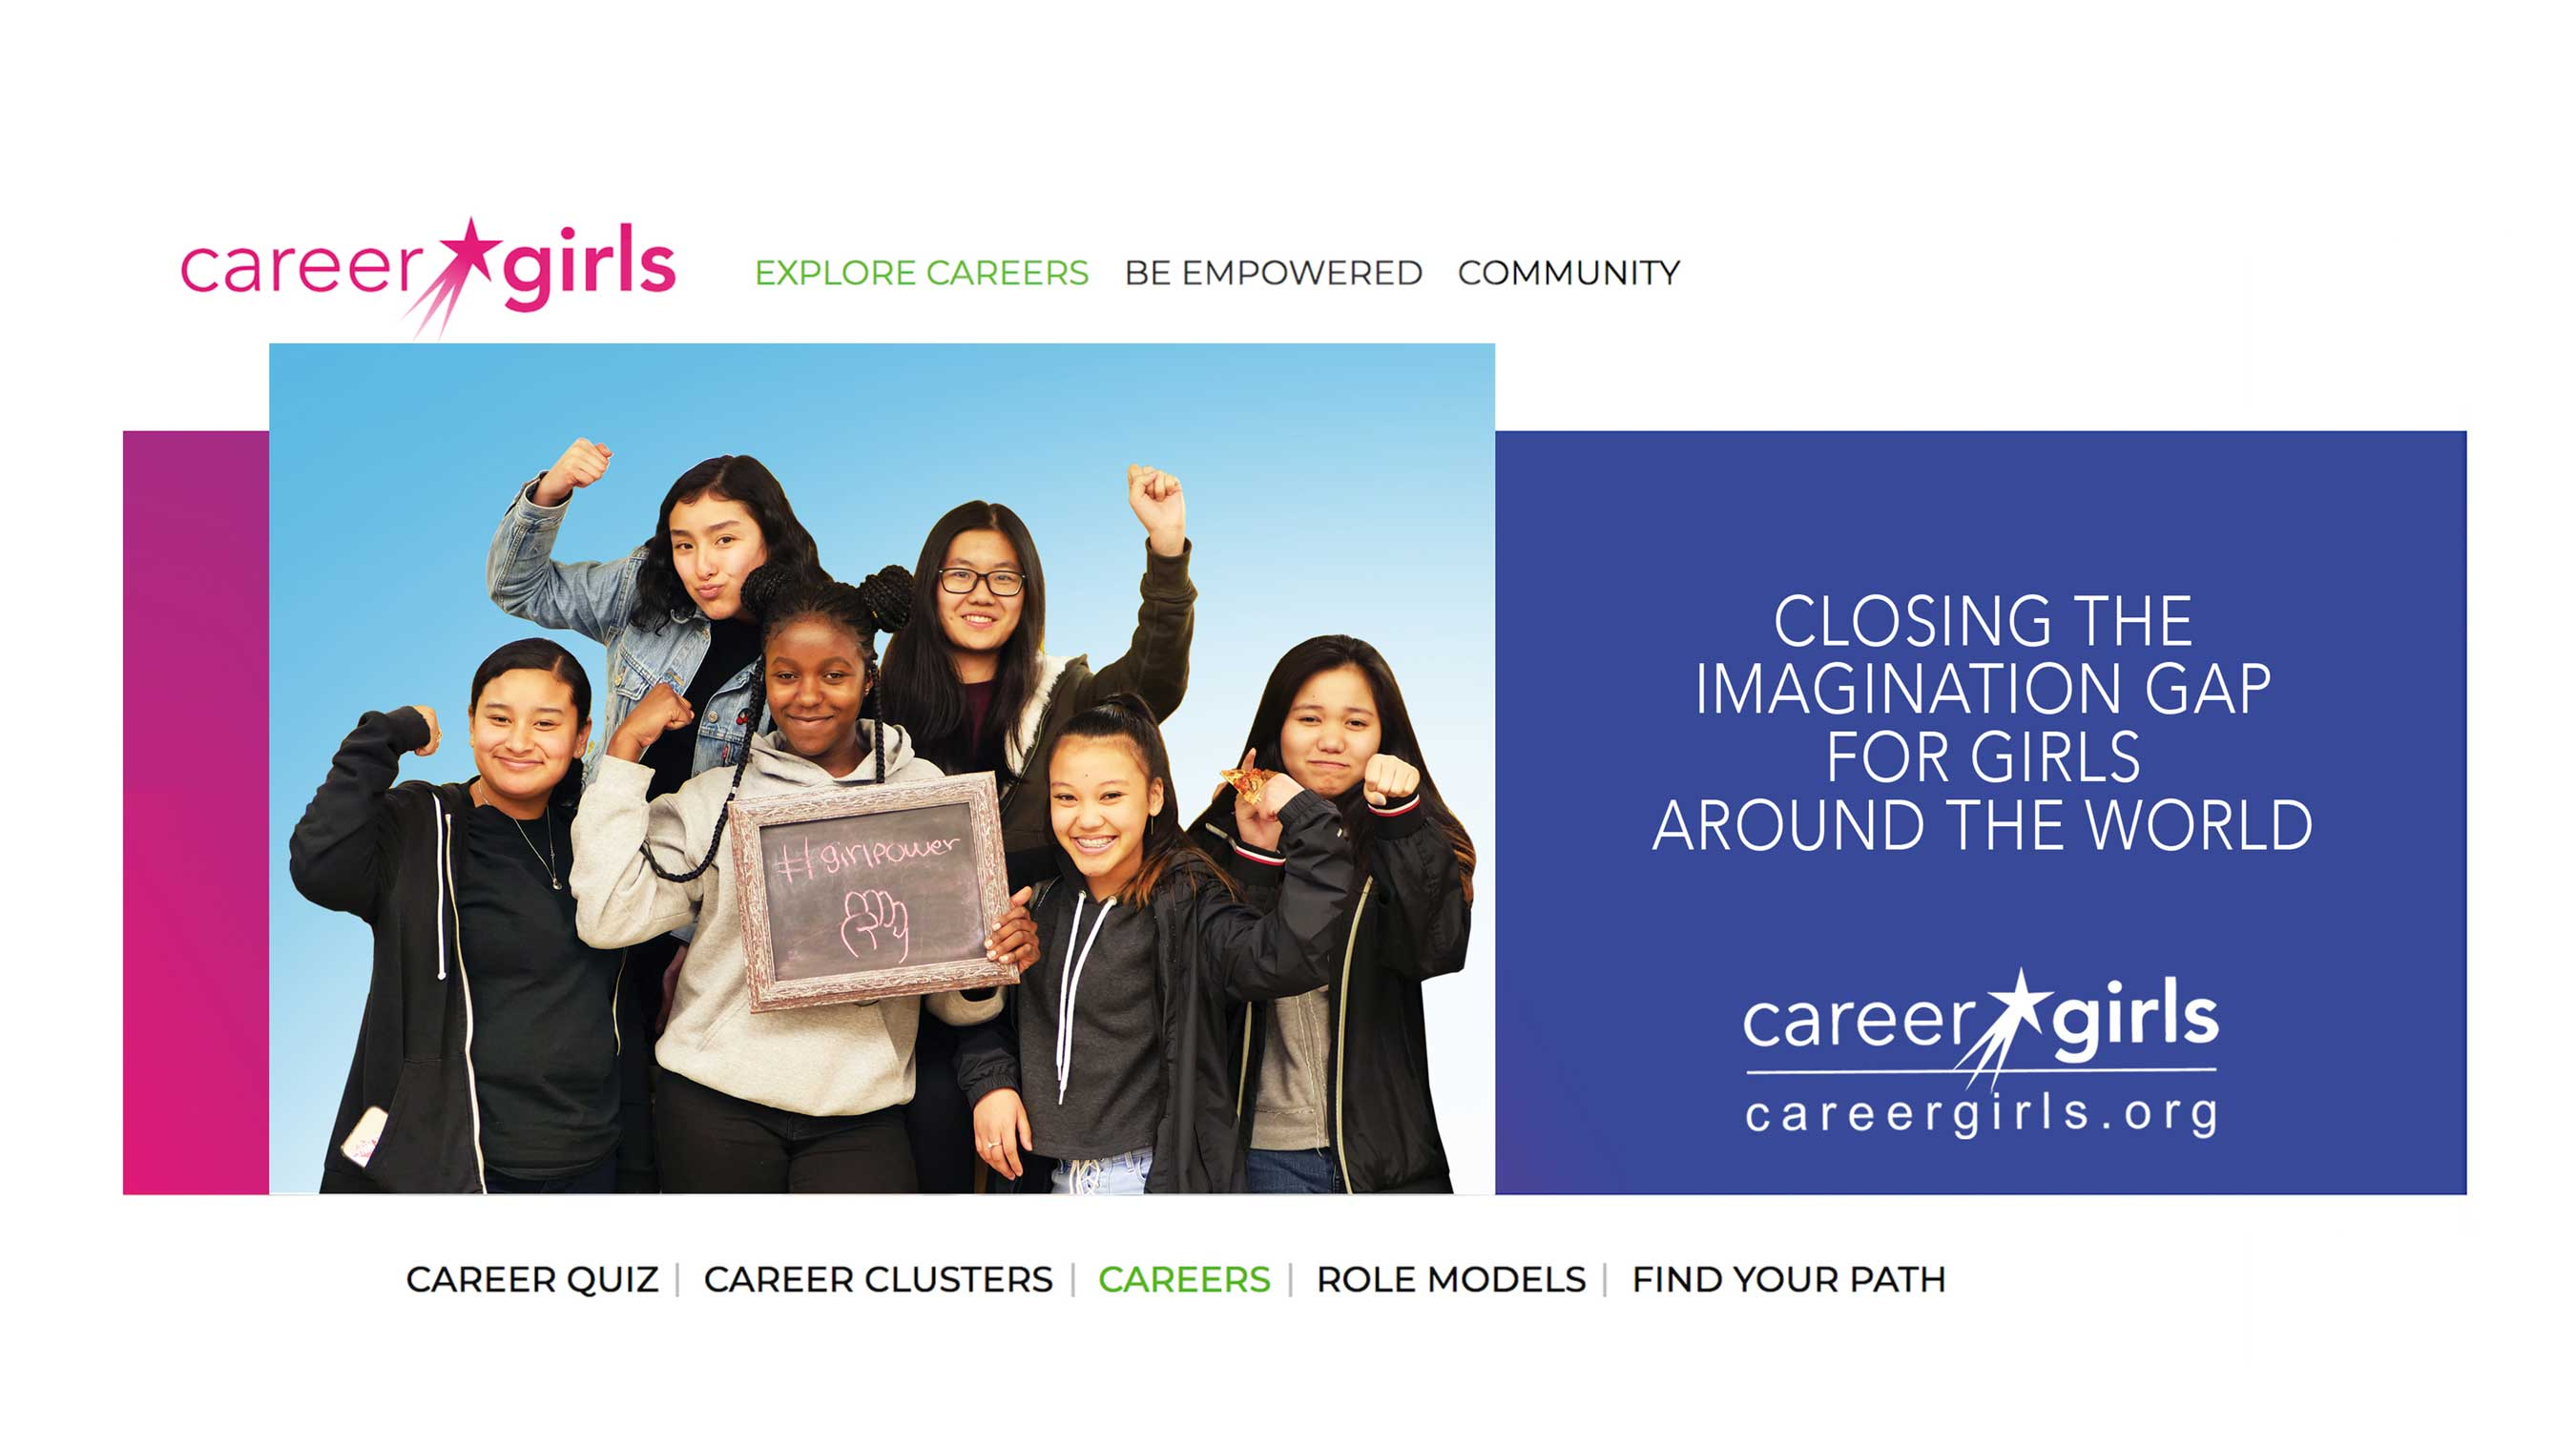 Career Girls launches new-and-improved career exploration site - Careergirls.org- making it easier for all young girls, and the educators and mentors who guide them, to access its collection of over 10,000 women career role model videos and ready-to-use, girl-centric career exploration curriculum.